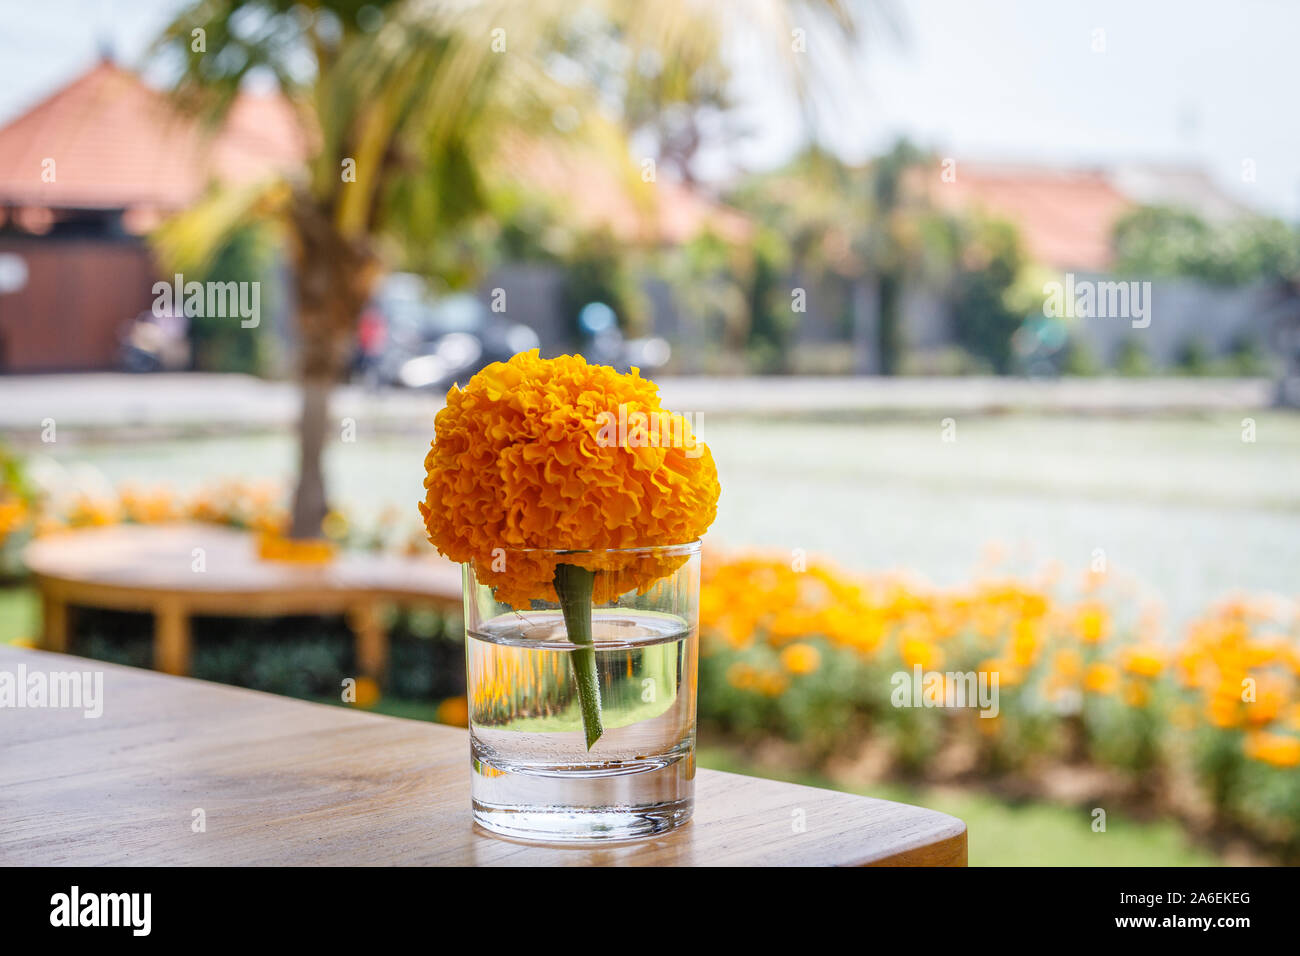 Marigold flower in a small glass on a wooden table in a cafe. Natural background.  With space. Stock Photo